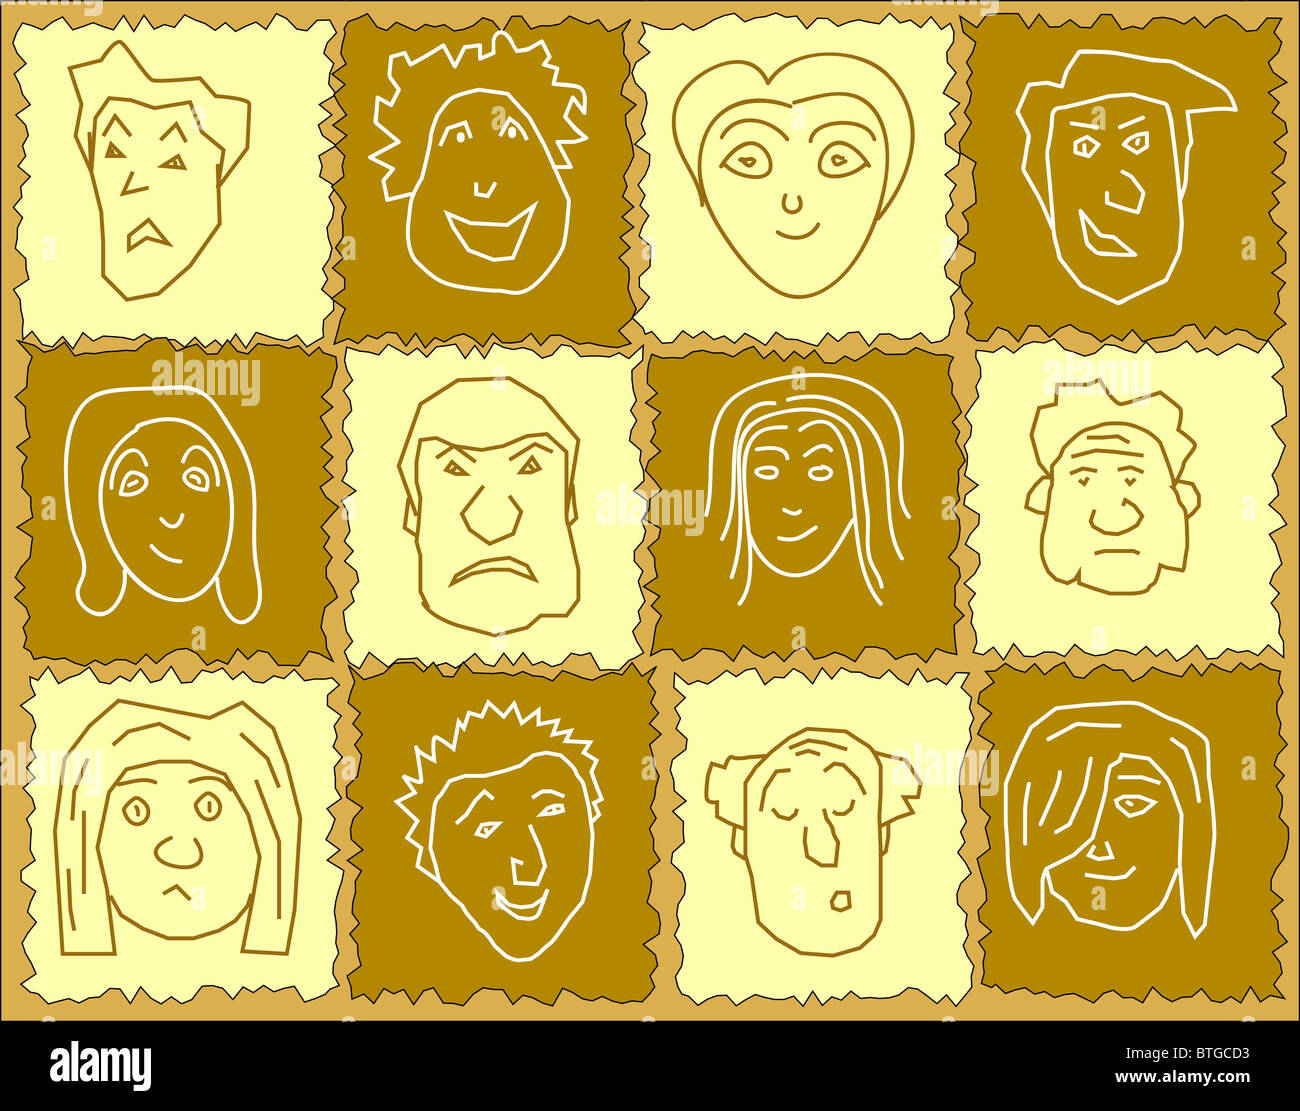 Expressions Cartoon Stock Photos & Expressions Cartoon Stock Images ...